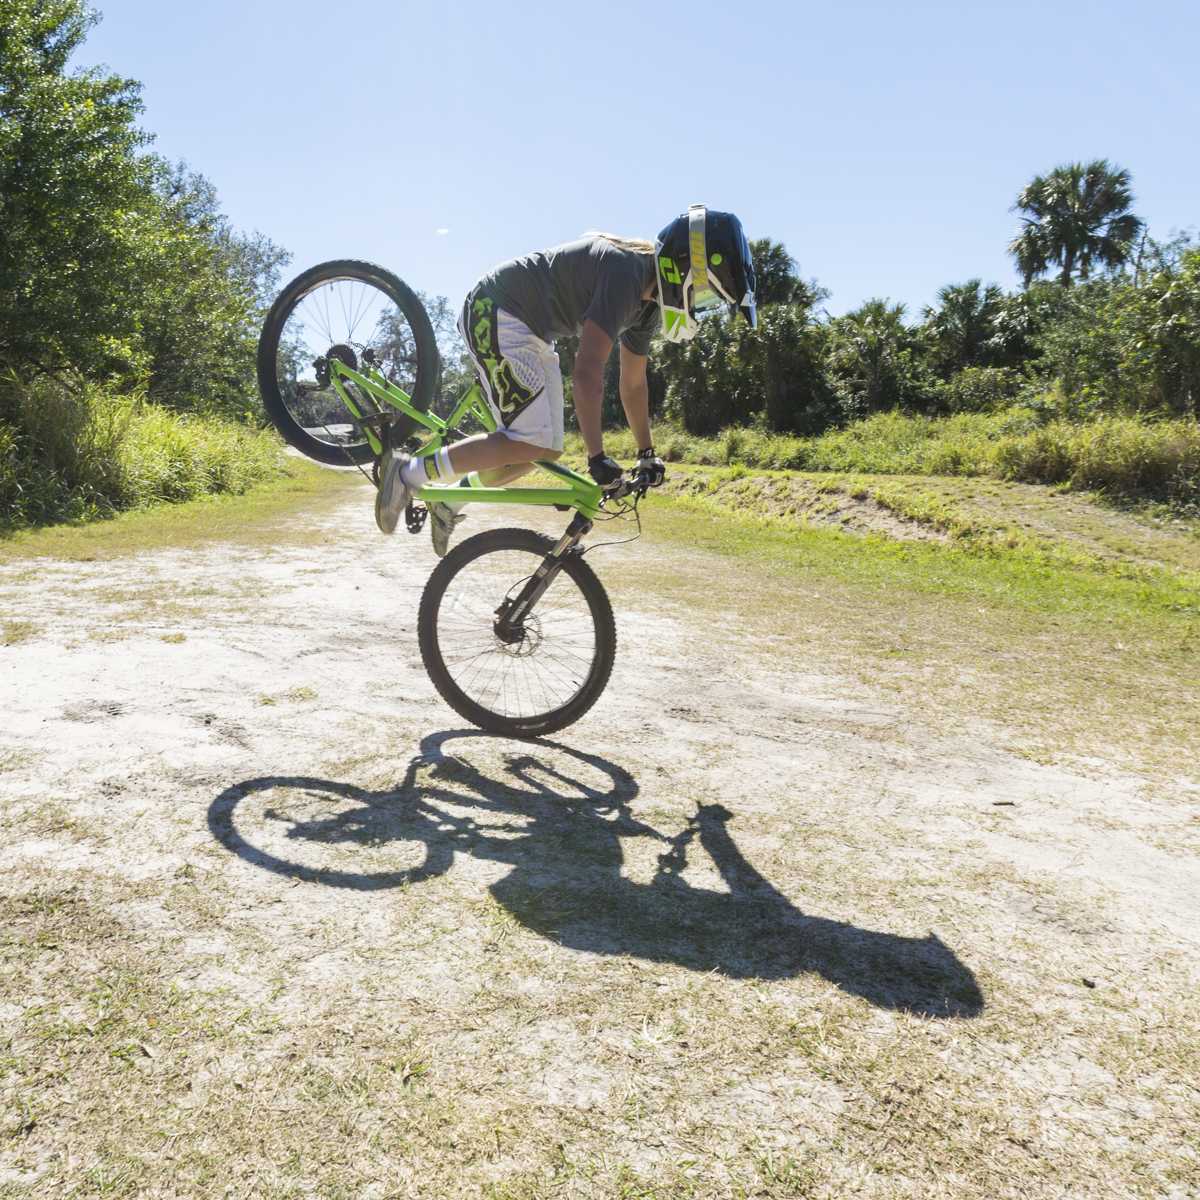 Mountain biker up on front wheel